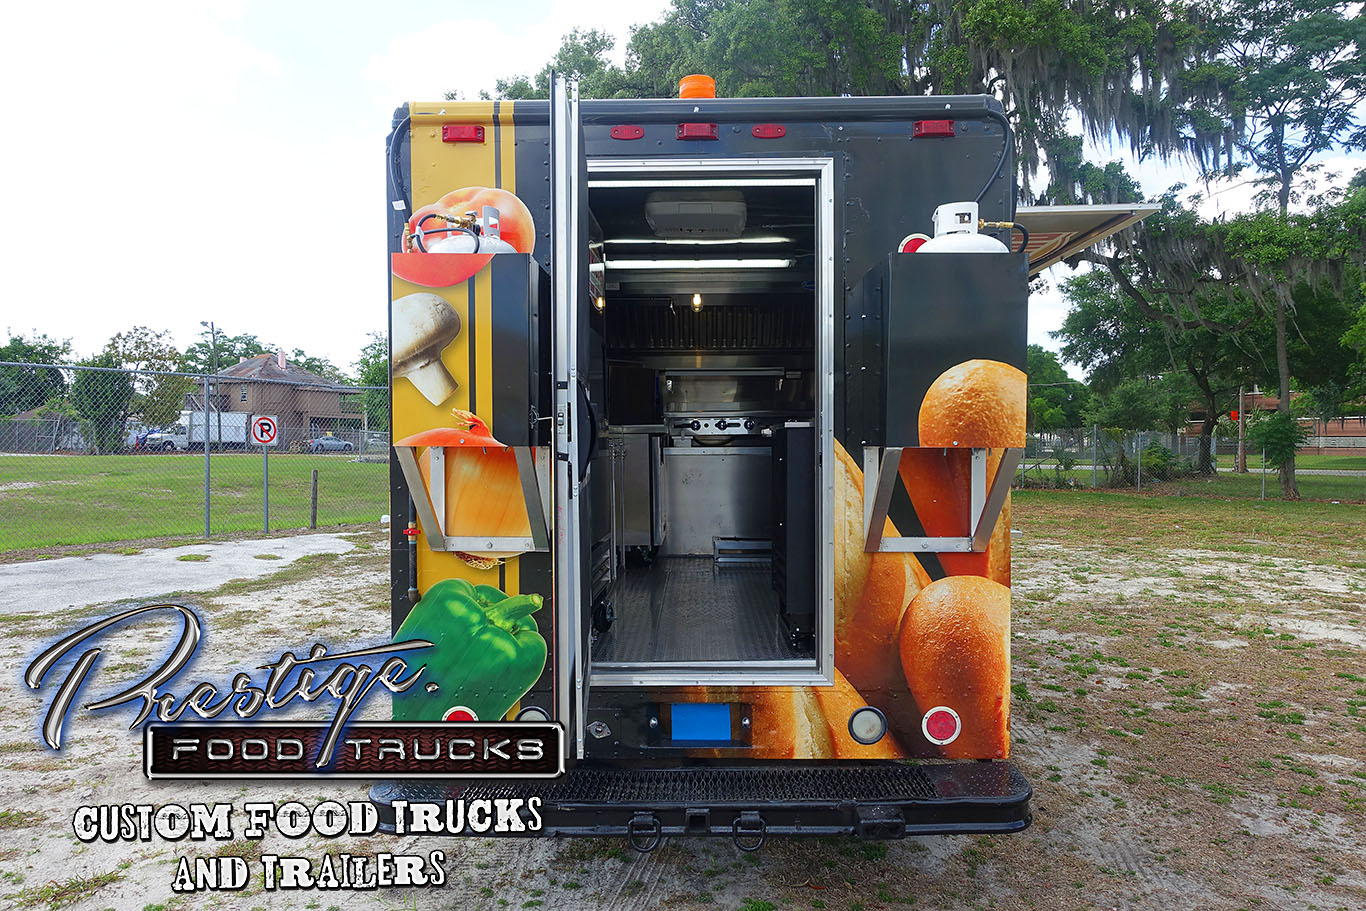 rear view of black food truck with rear door open to reveal inside kitchen